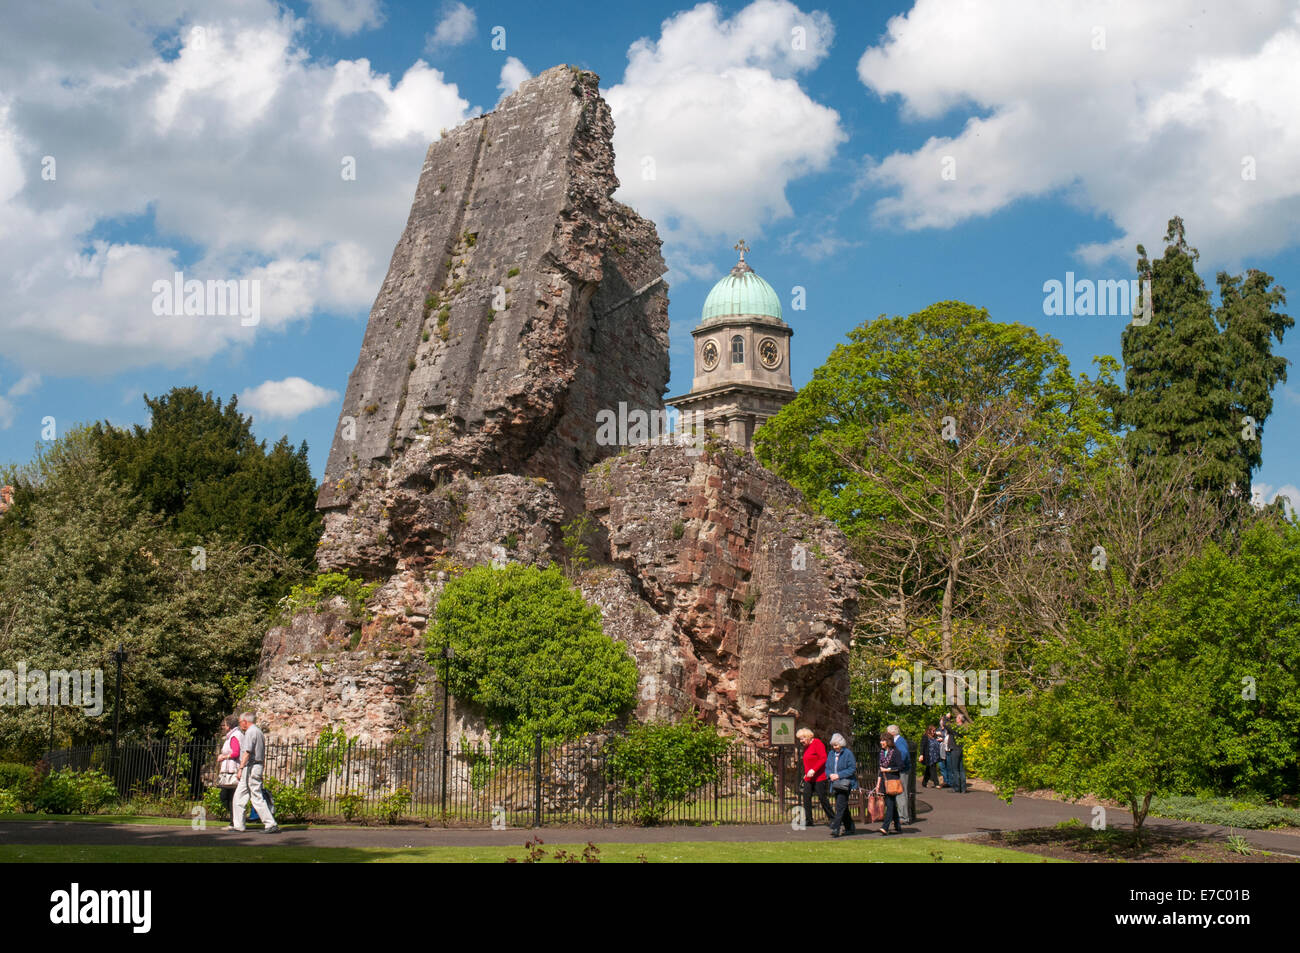 Ruined castle keep and St Mary Magalen's churchtower at Bridgnorth, Shropshire - Stock Image